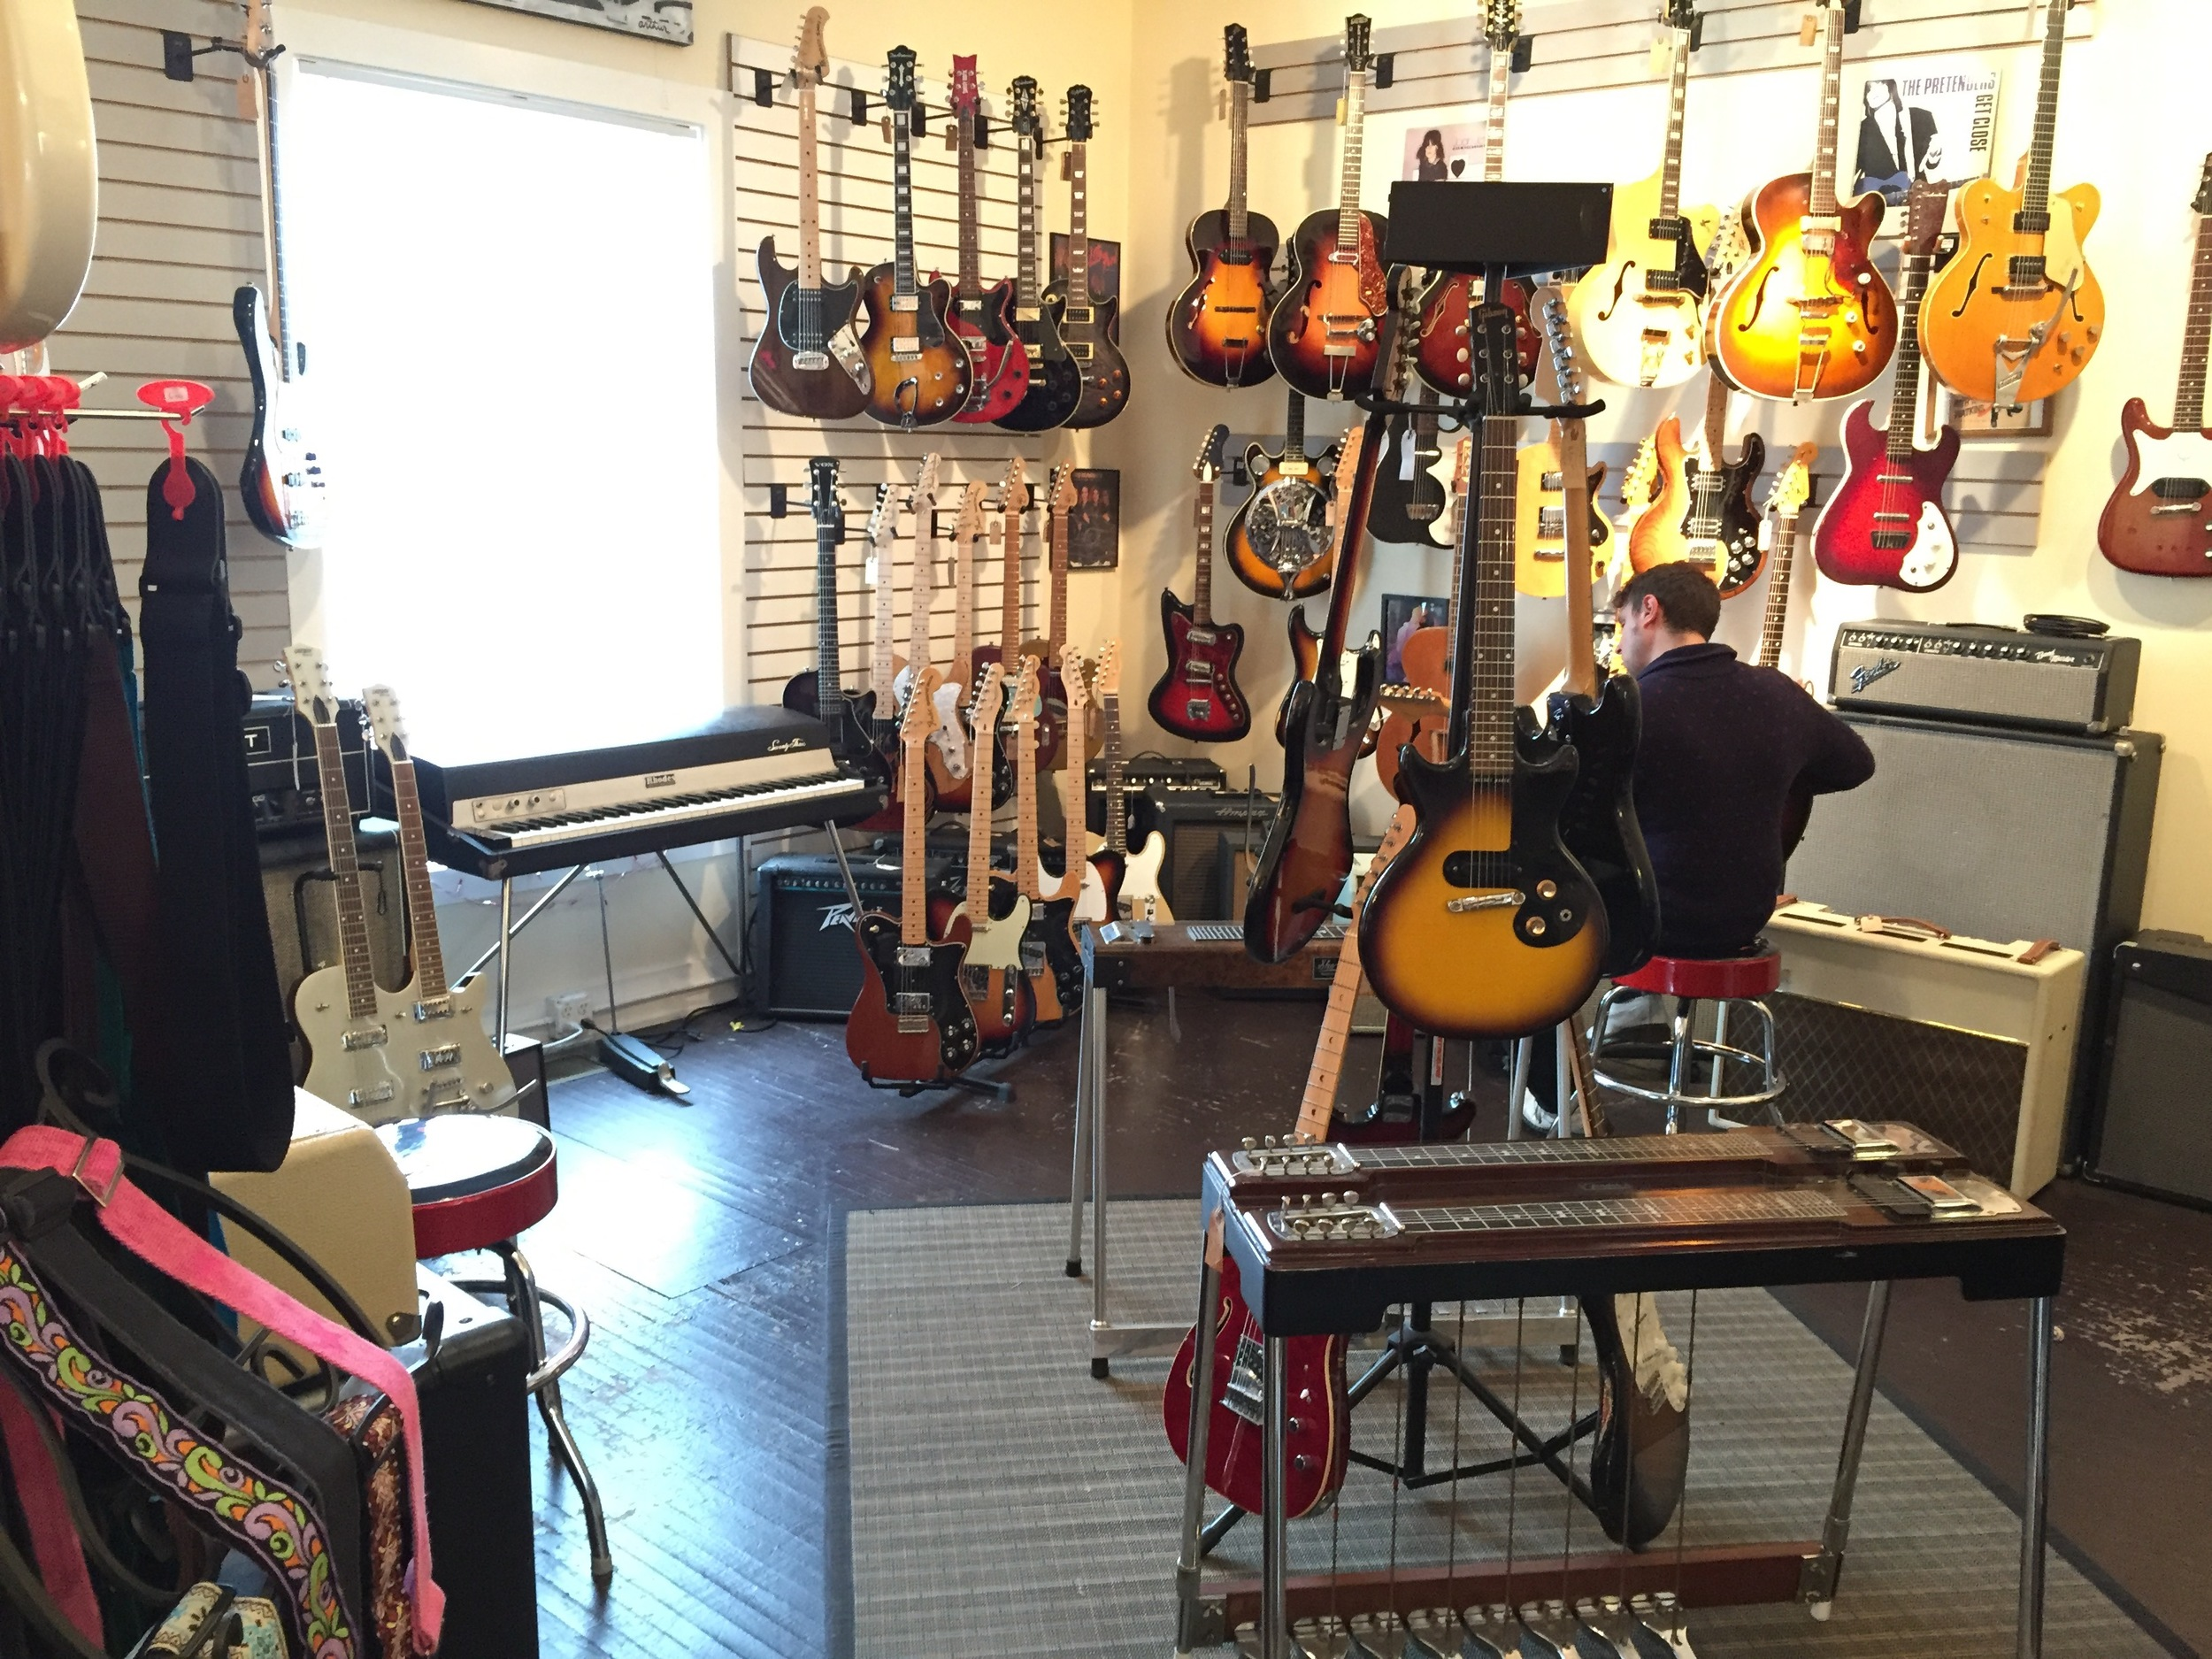 Fanny's specializes is affordable vintage instruments. There's always new stuff coming through, so it's always fun to stop by when you're in the neighborhood.